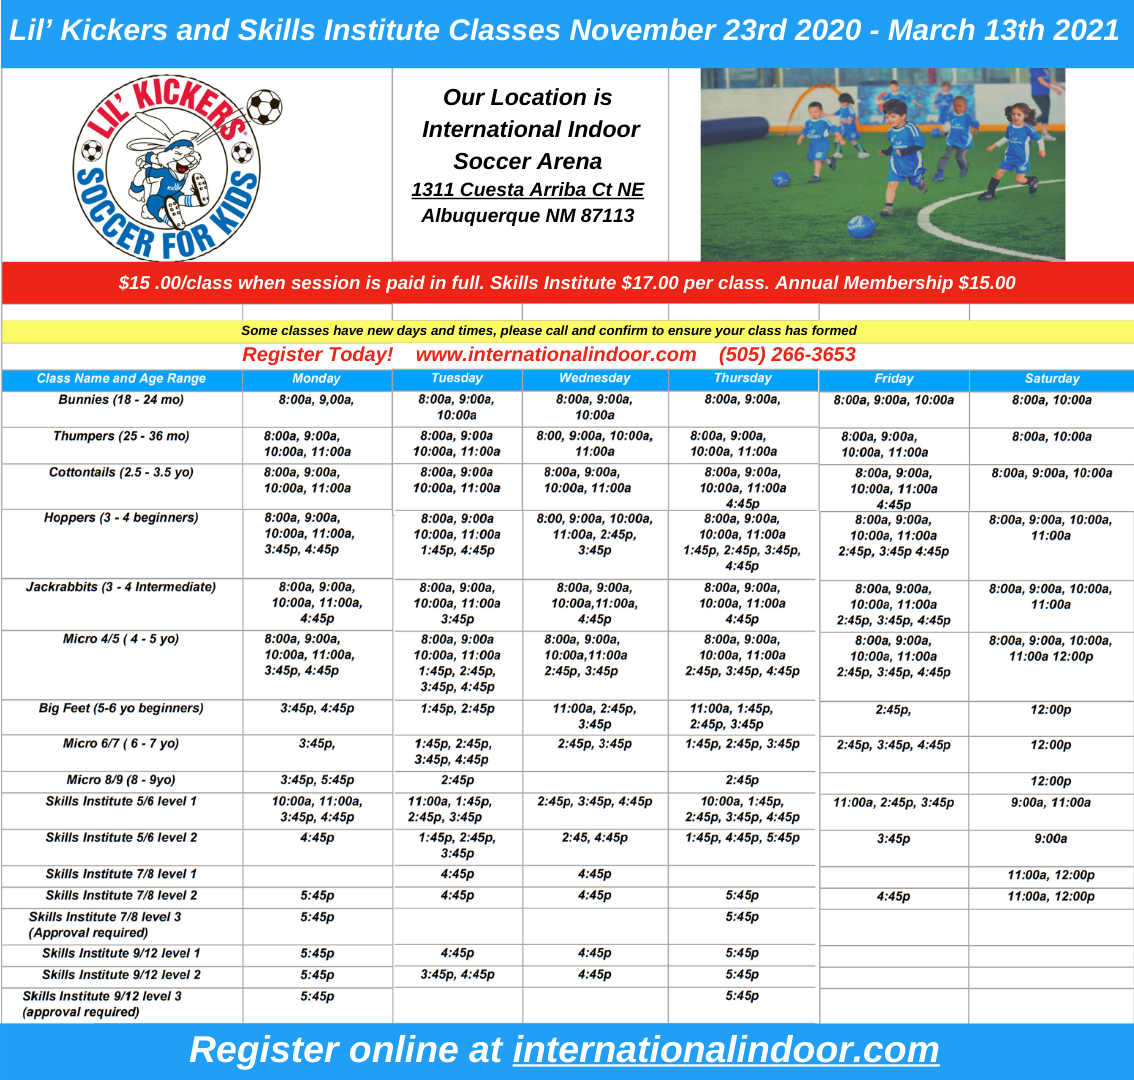 Lil Kickers schedule for winter 2020-2021